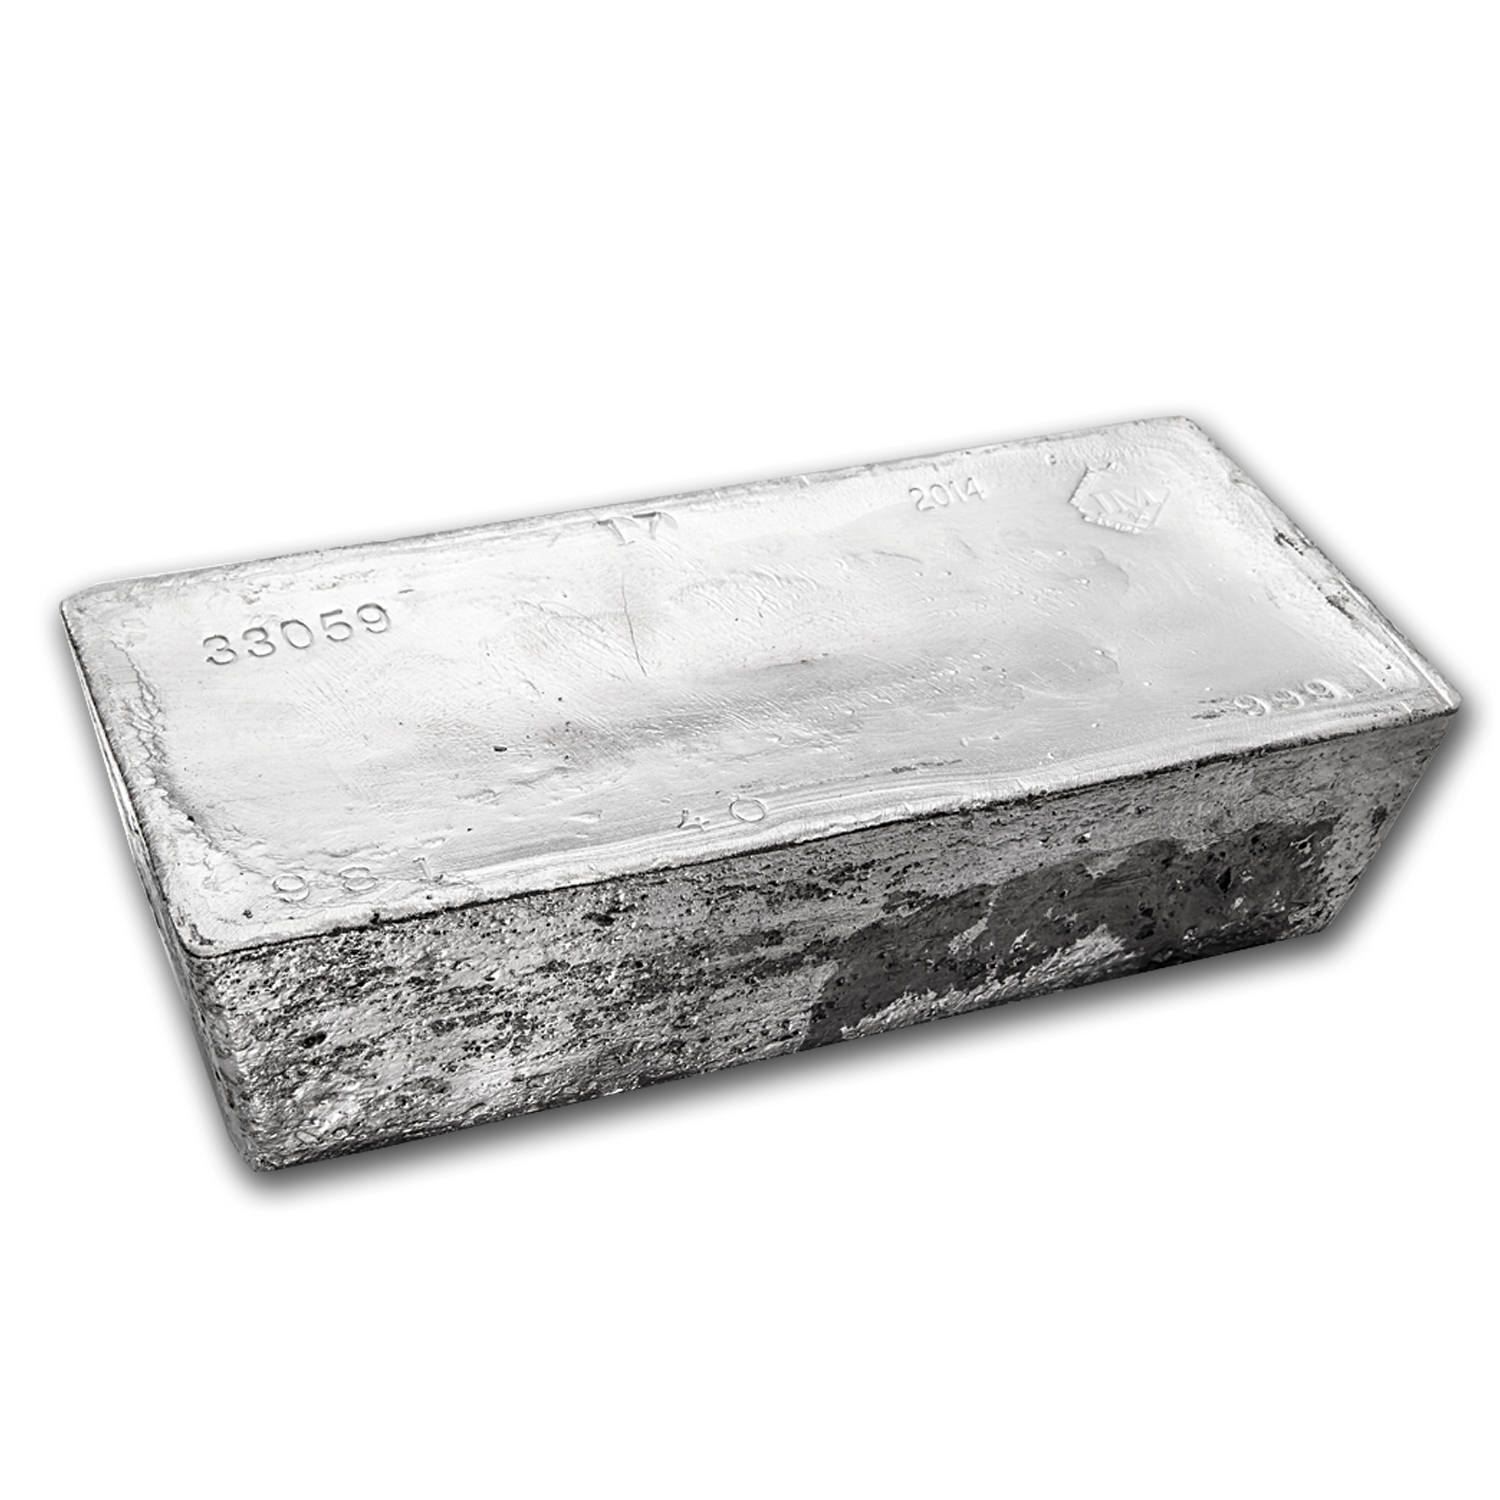 1007.60 oz Silver Bar - Johnson Matthey